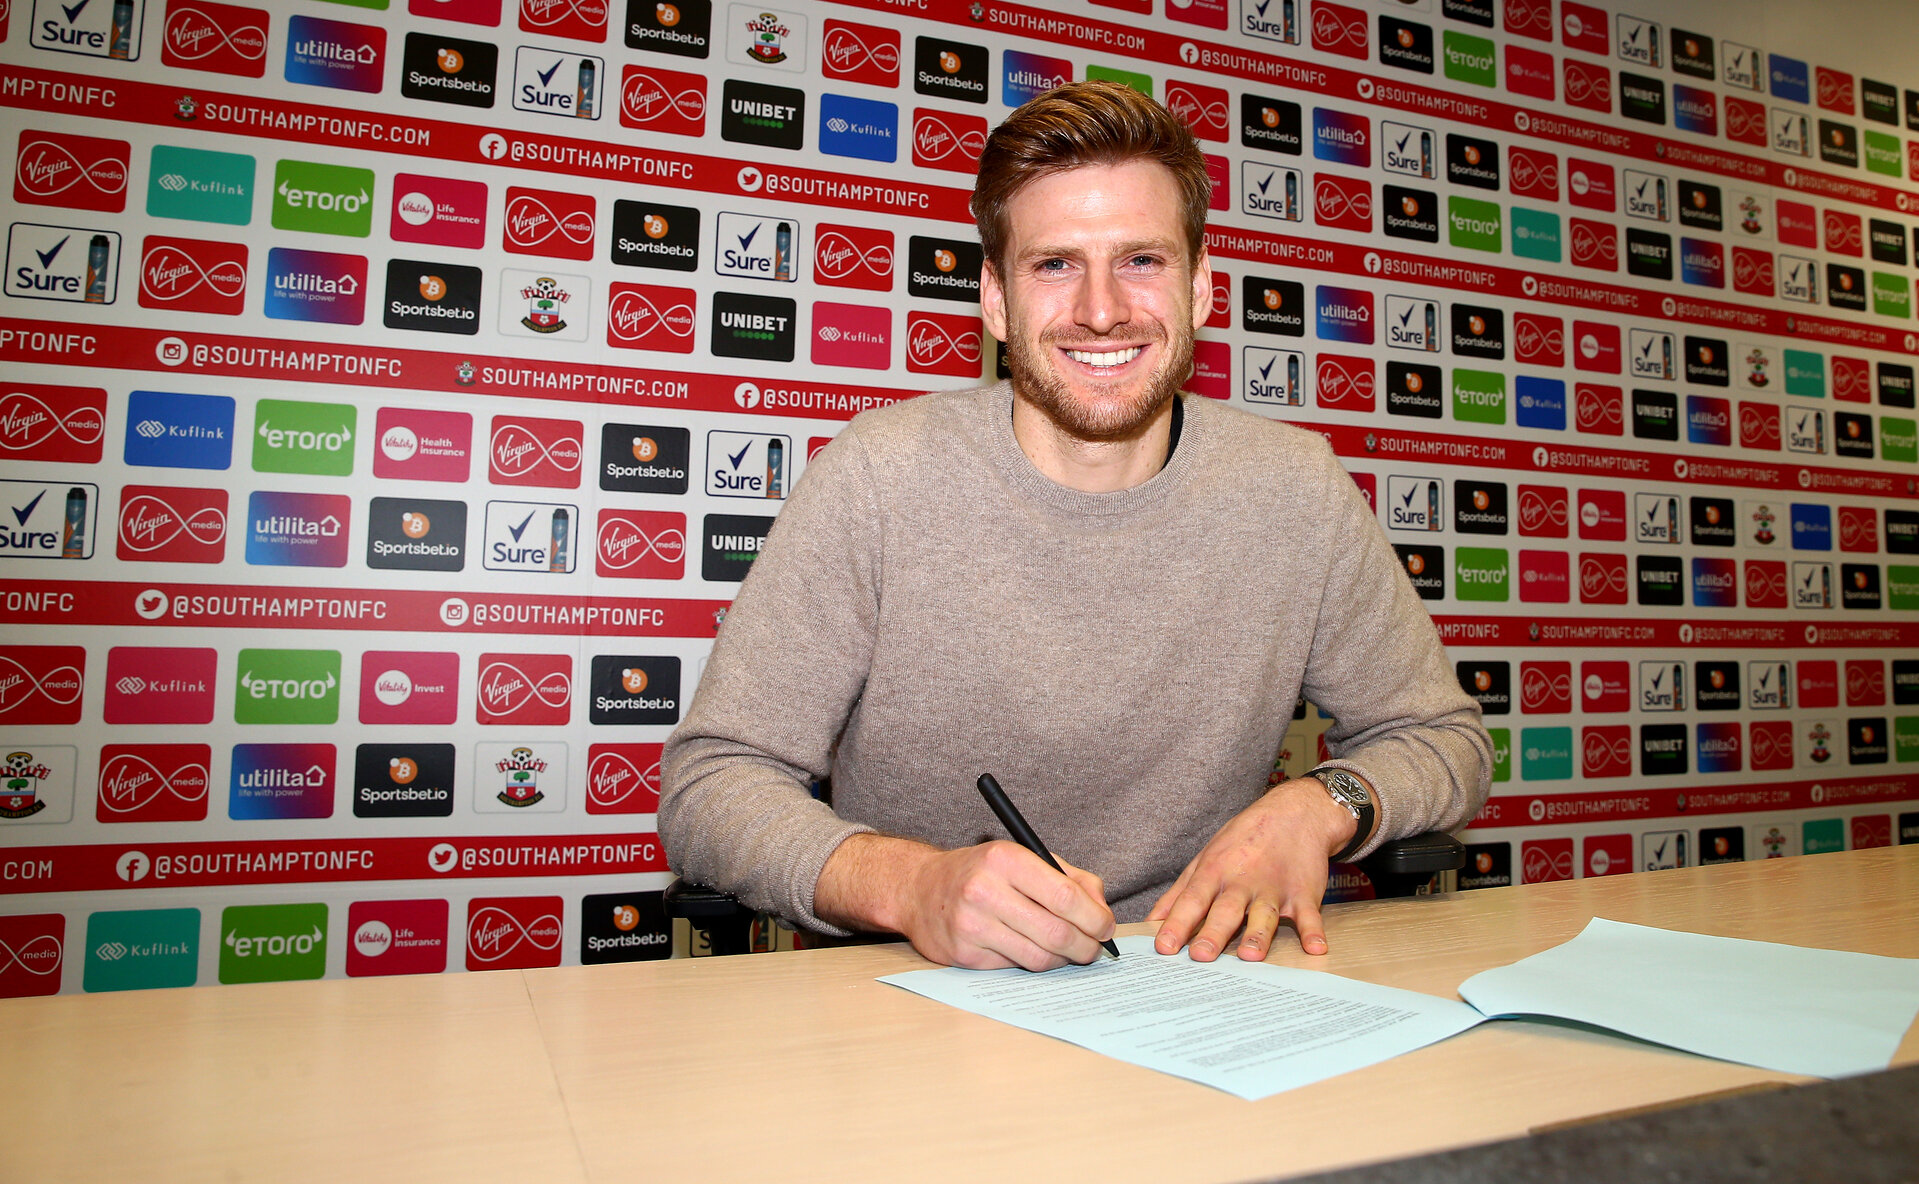 SOUTHAMPTON, ENGLAND - DECEMBER 30: Southampton FC's Stuart Armstrong signs a new contract to keep him at the club until 2024, pictured at the Staplewood Campus on December 30, 2020 in Southampton, England. (Photo by Matt Watson/Southampton FC via Getty Images)